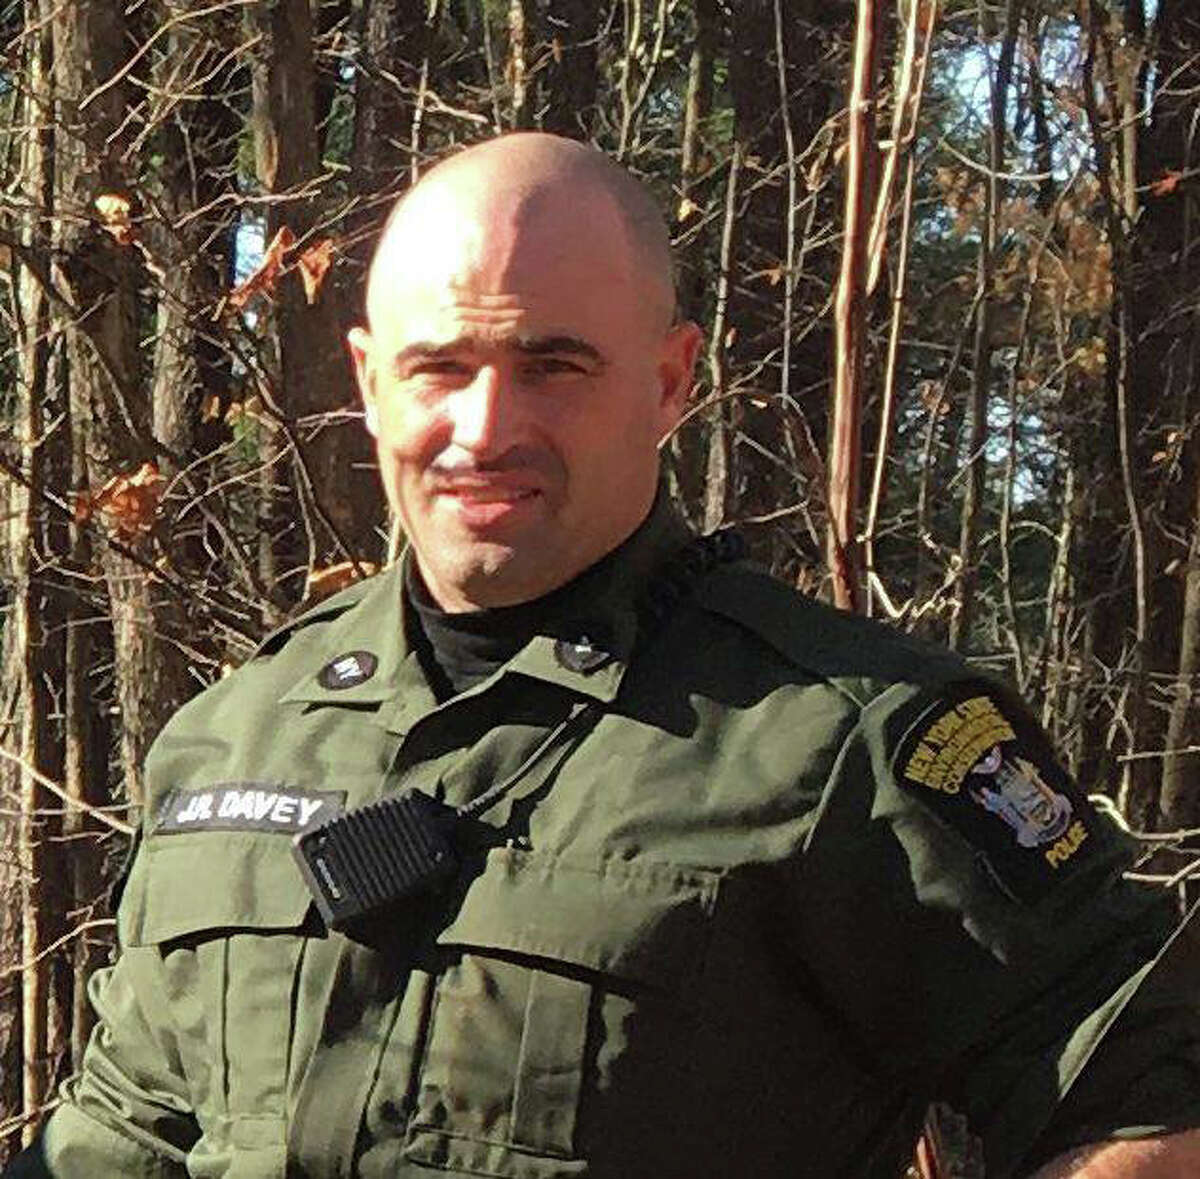 State Environmental Conservation Officer James Davey returned to work on Monday after being shot last November while investigating reports of illegal hunting activity in the Town of Gallatin in Columbia County. (NYS DEC)